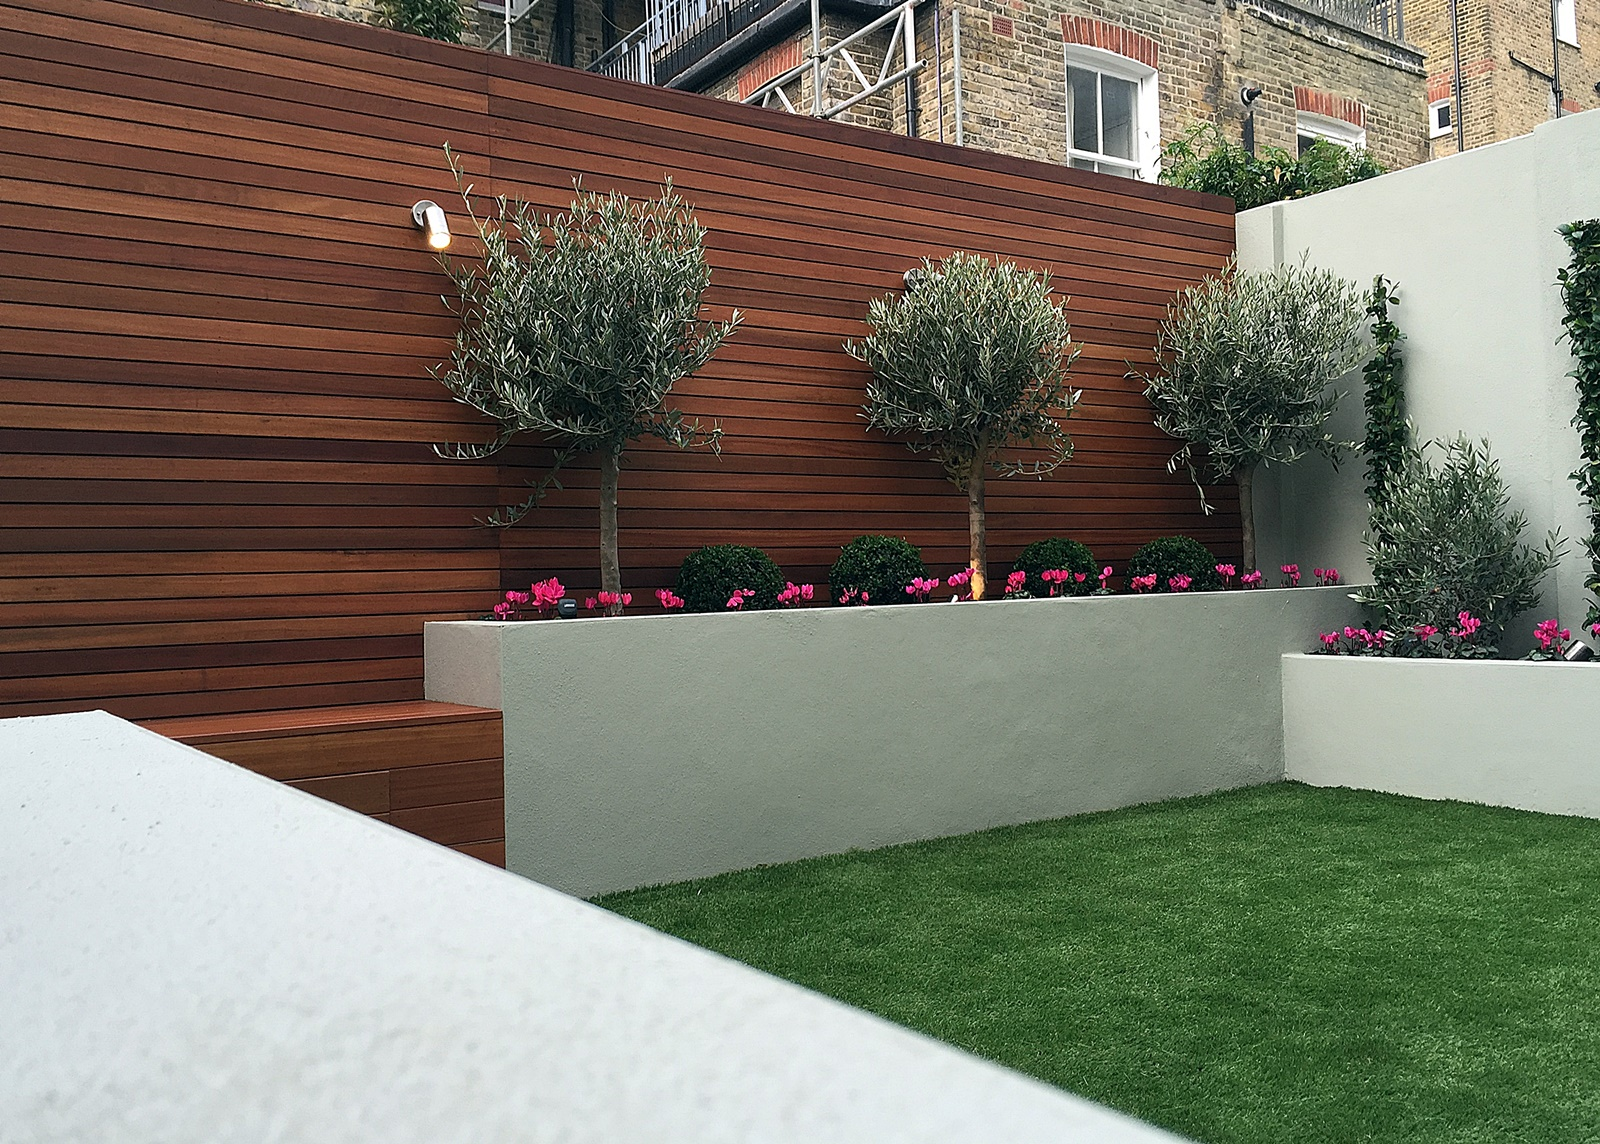 Simple modern court yard garden designer battersea fulham chelsea claphm dulwich london london - Garden ideas london ...